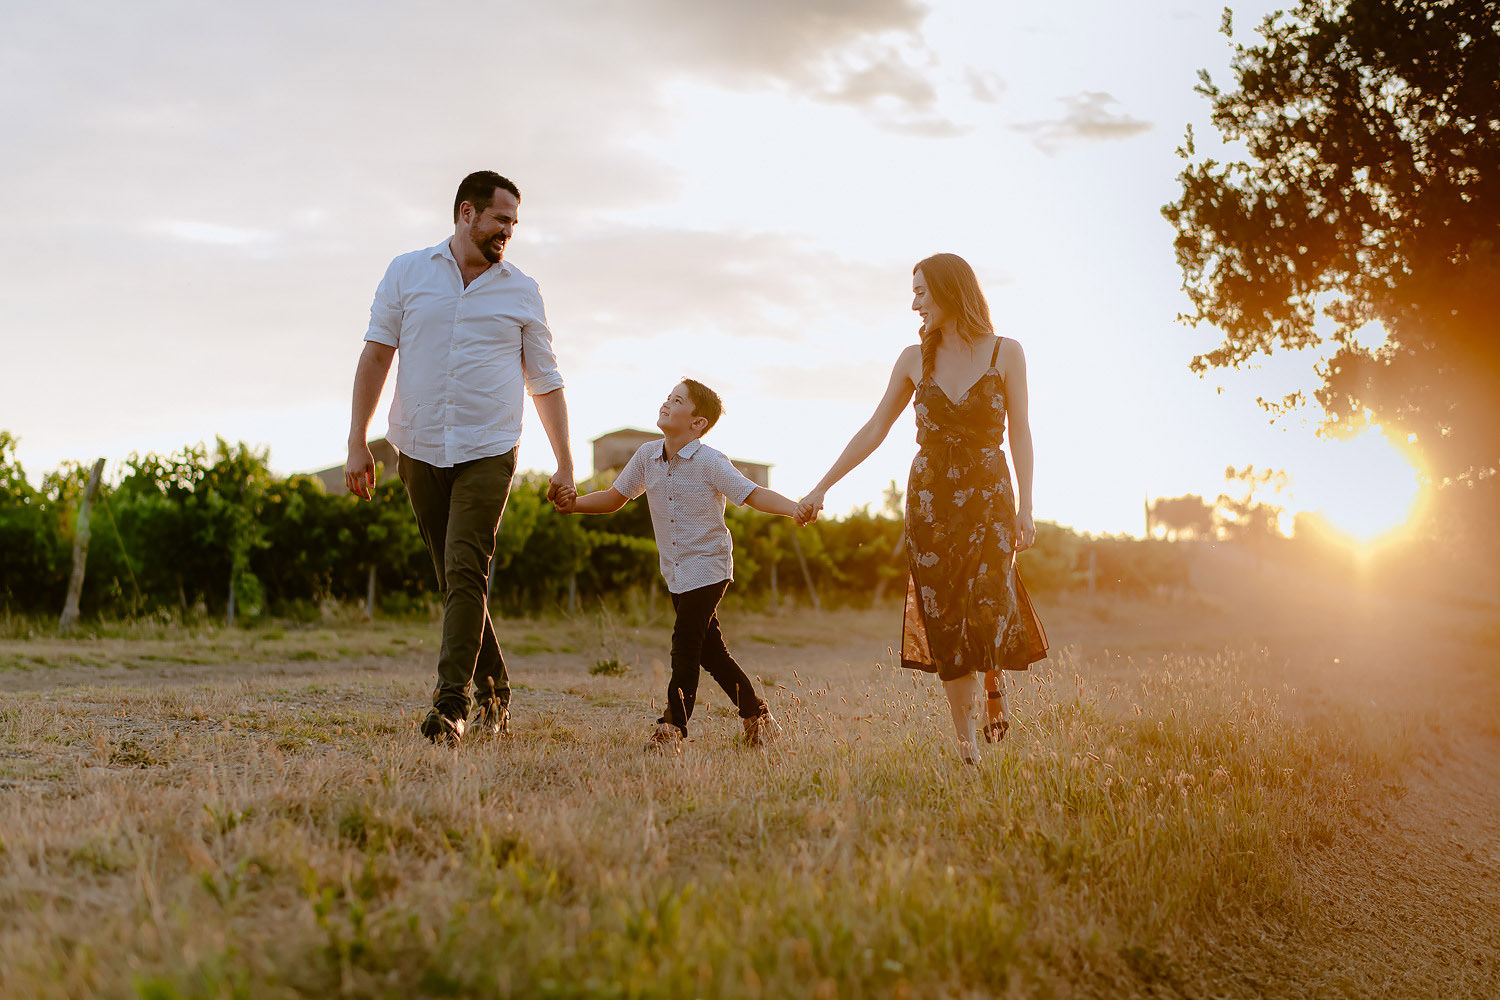 family photographer florence travel vacation vioa tornabuoni